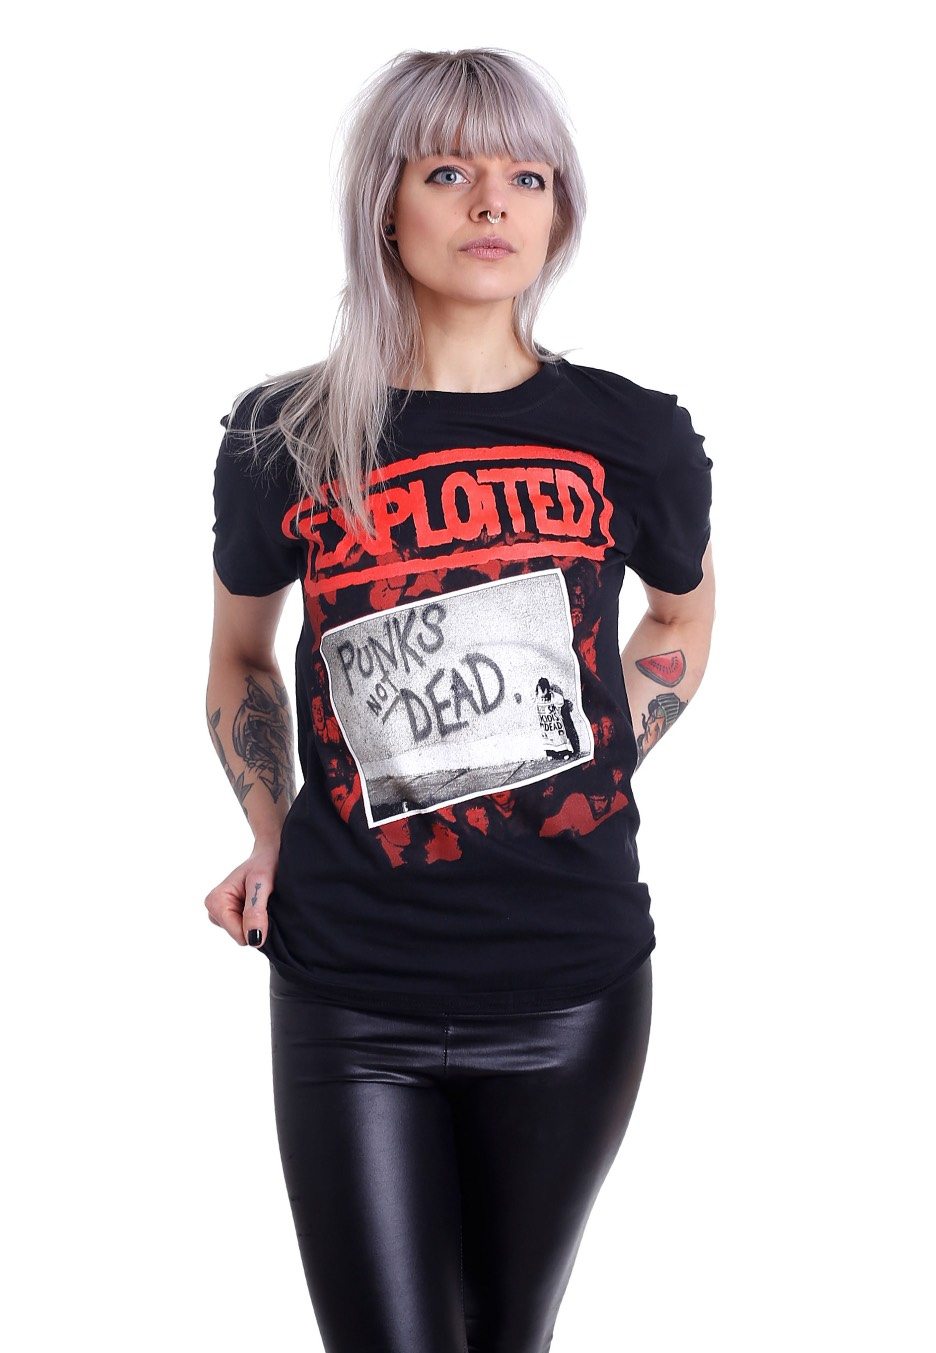 The Exploited - Punks Not Dead - T-Shirt - Official Rock Merchandise Shop - Impericon -3095